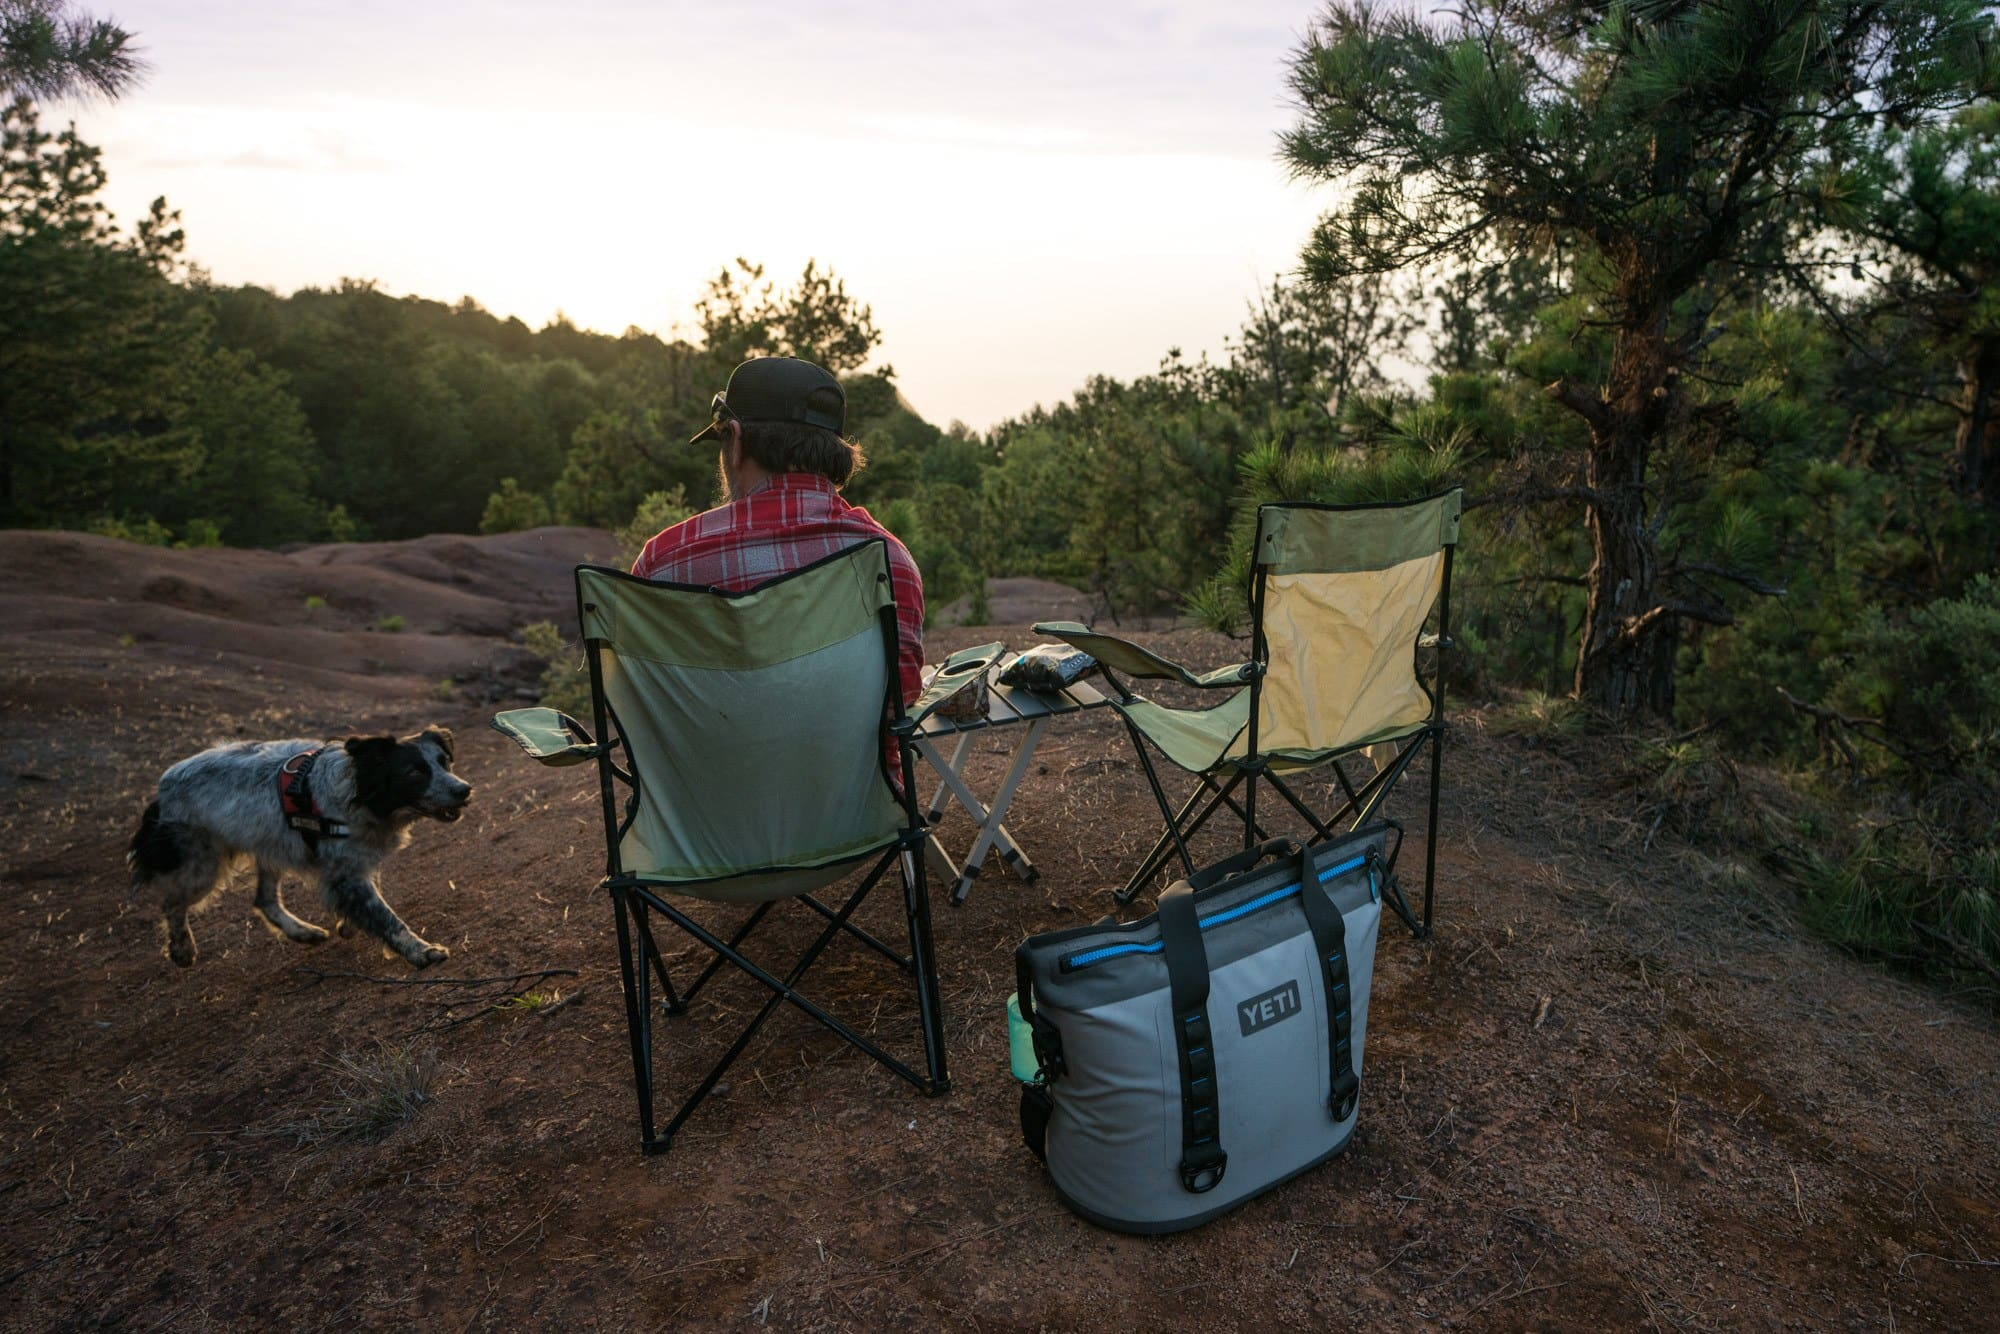 GCI Compact Camp Table // Want to live in a van? Check out this round-up of my favorite vanlife gear and essentials for a long-term road trip.